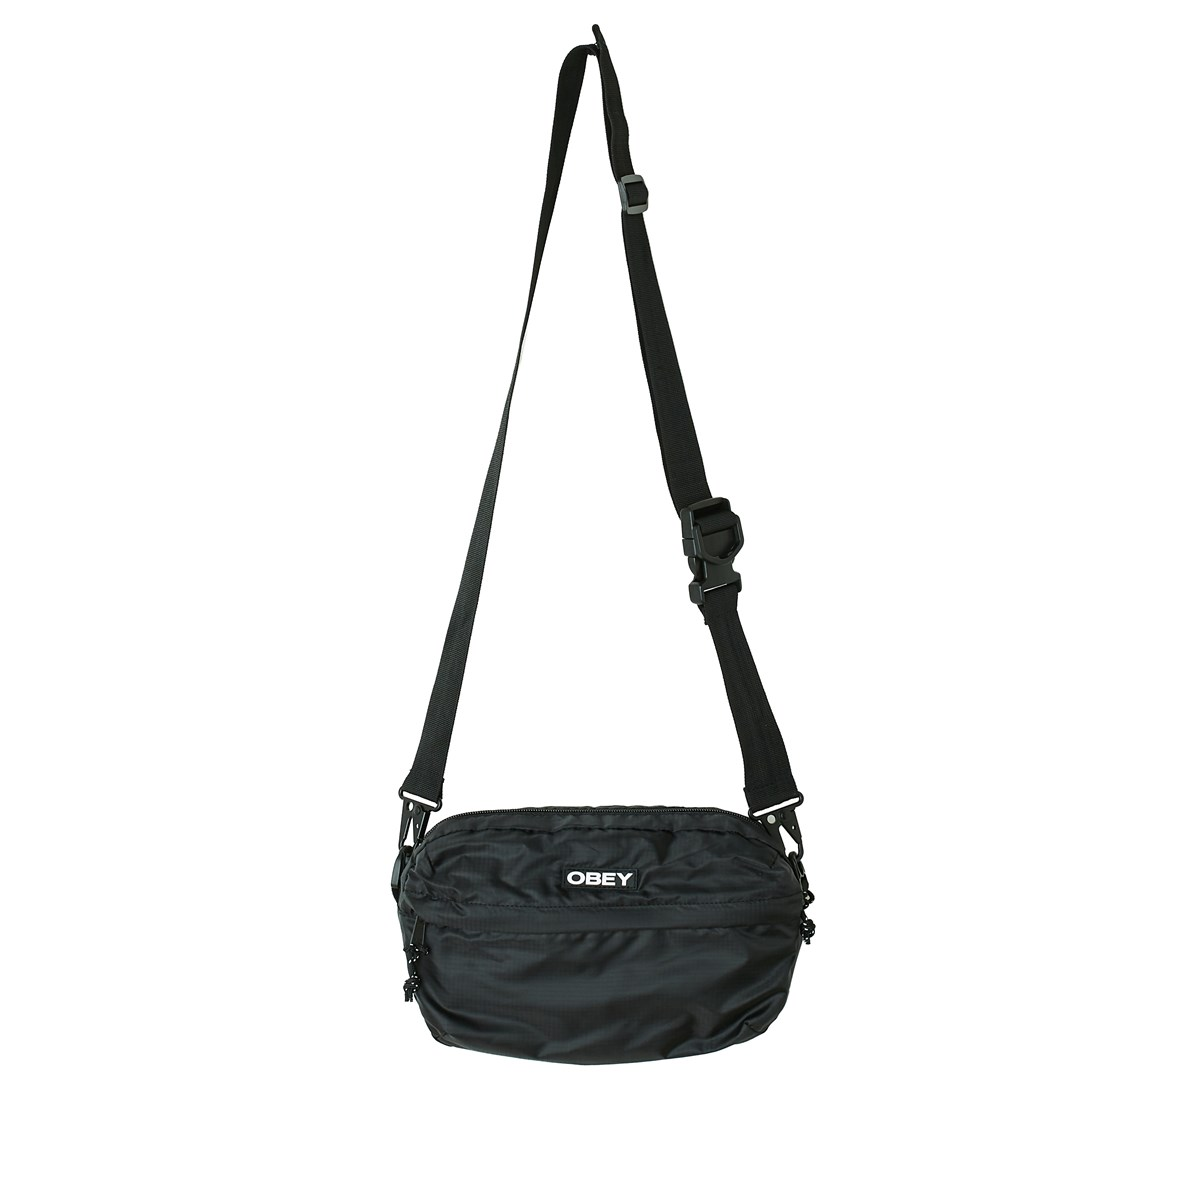 Commuter Traveler Cross-Body Bag in Black